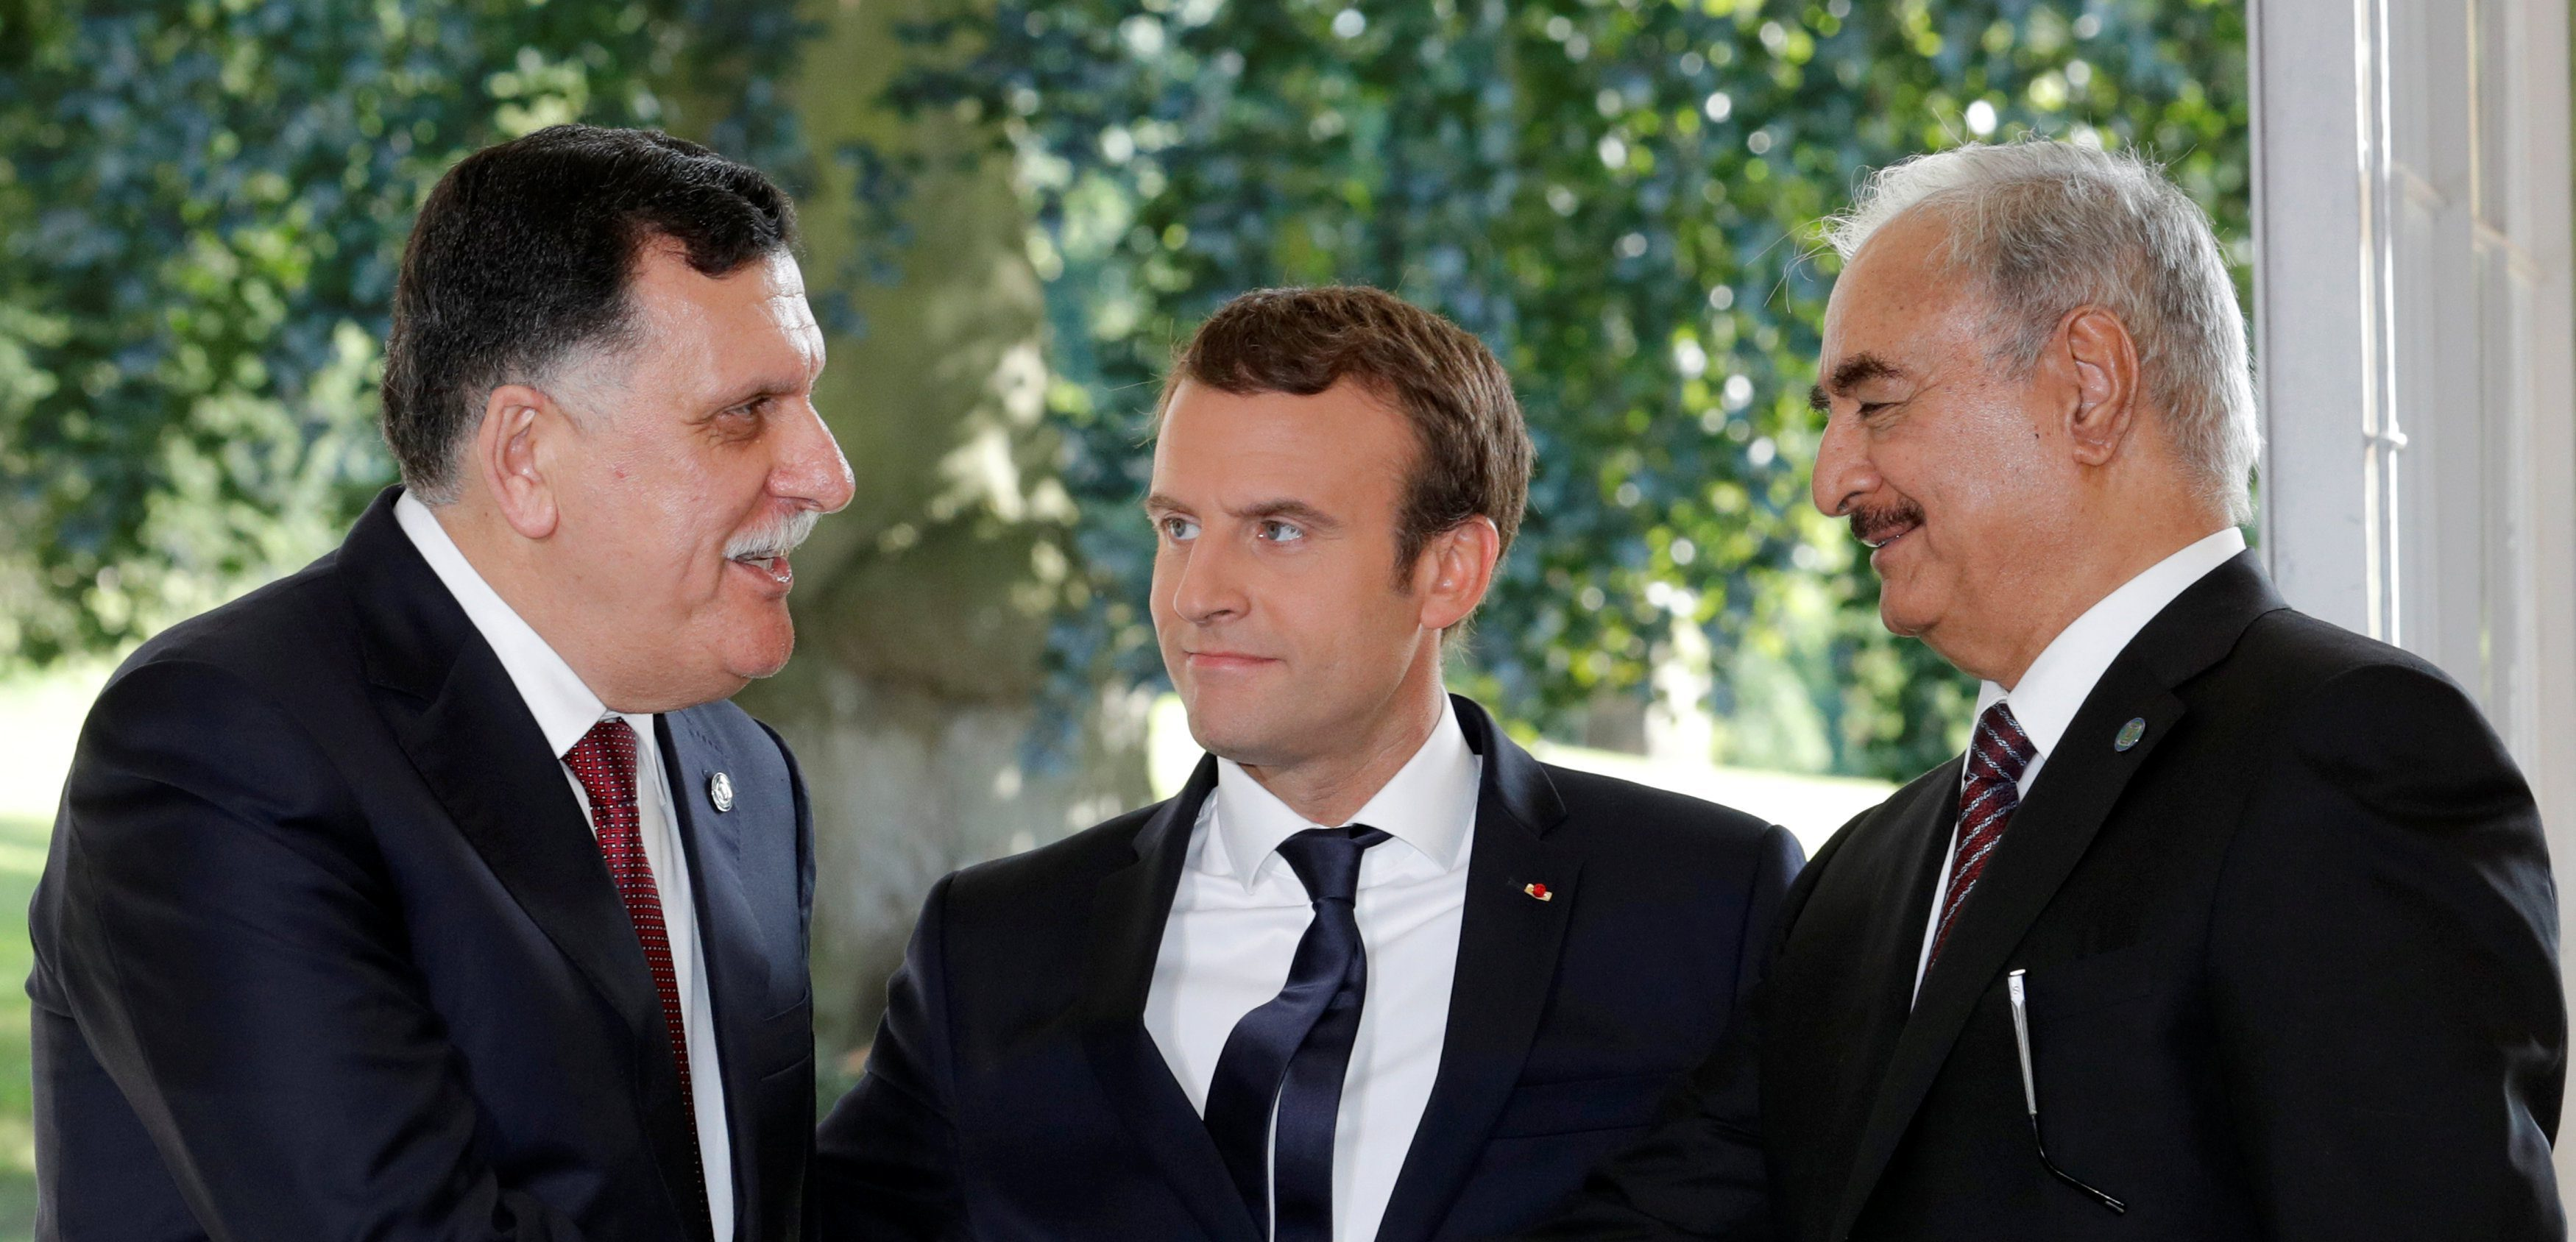 French President Emmanuel Macron stands between Libyan Prime Minister Fayez al-Sarraj (L), and General Khalifa Haftar (R), commander in the Libyan National Army (LNA), who shake hands after talks over a political deal to help end Libya's crisis in La Celle-Saint-Cloud near Paris, France, July 25, 2017. REUTERS/Philippe Wojazer TPX IMAGES OF THE DAY - RTX3CVLX